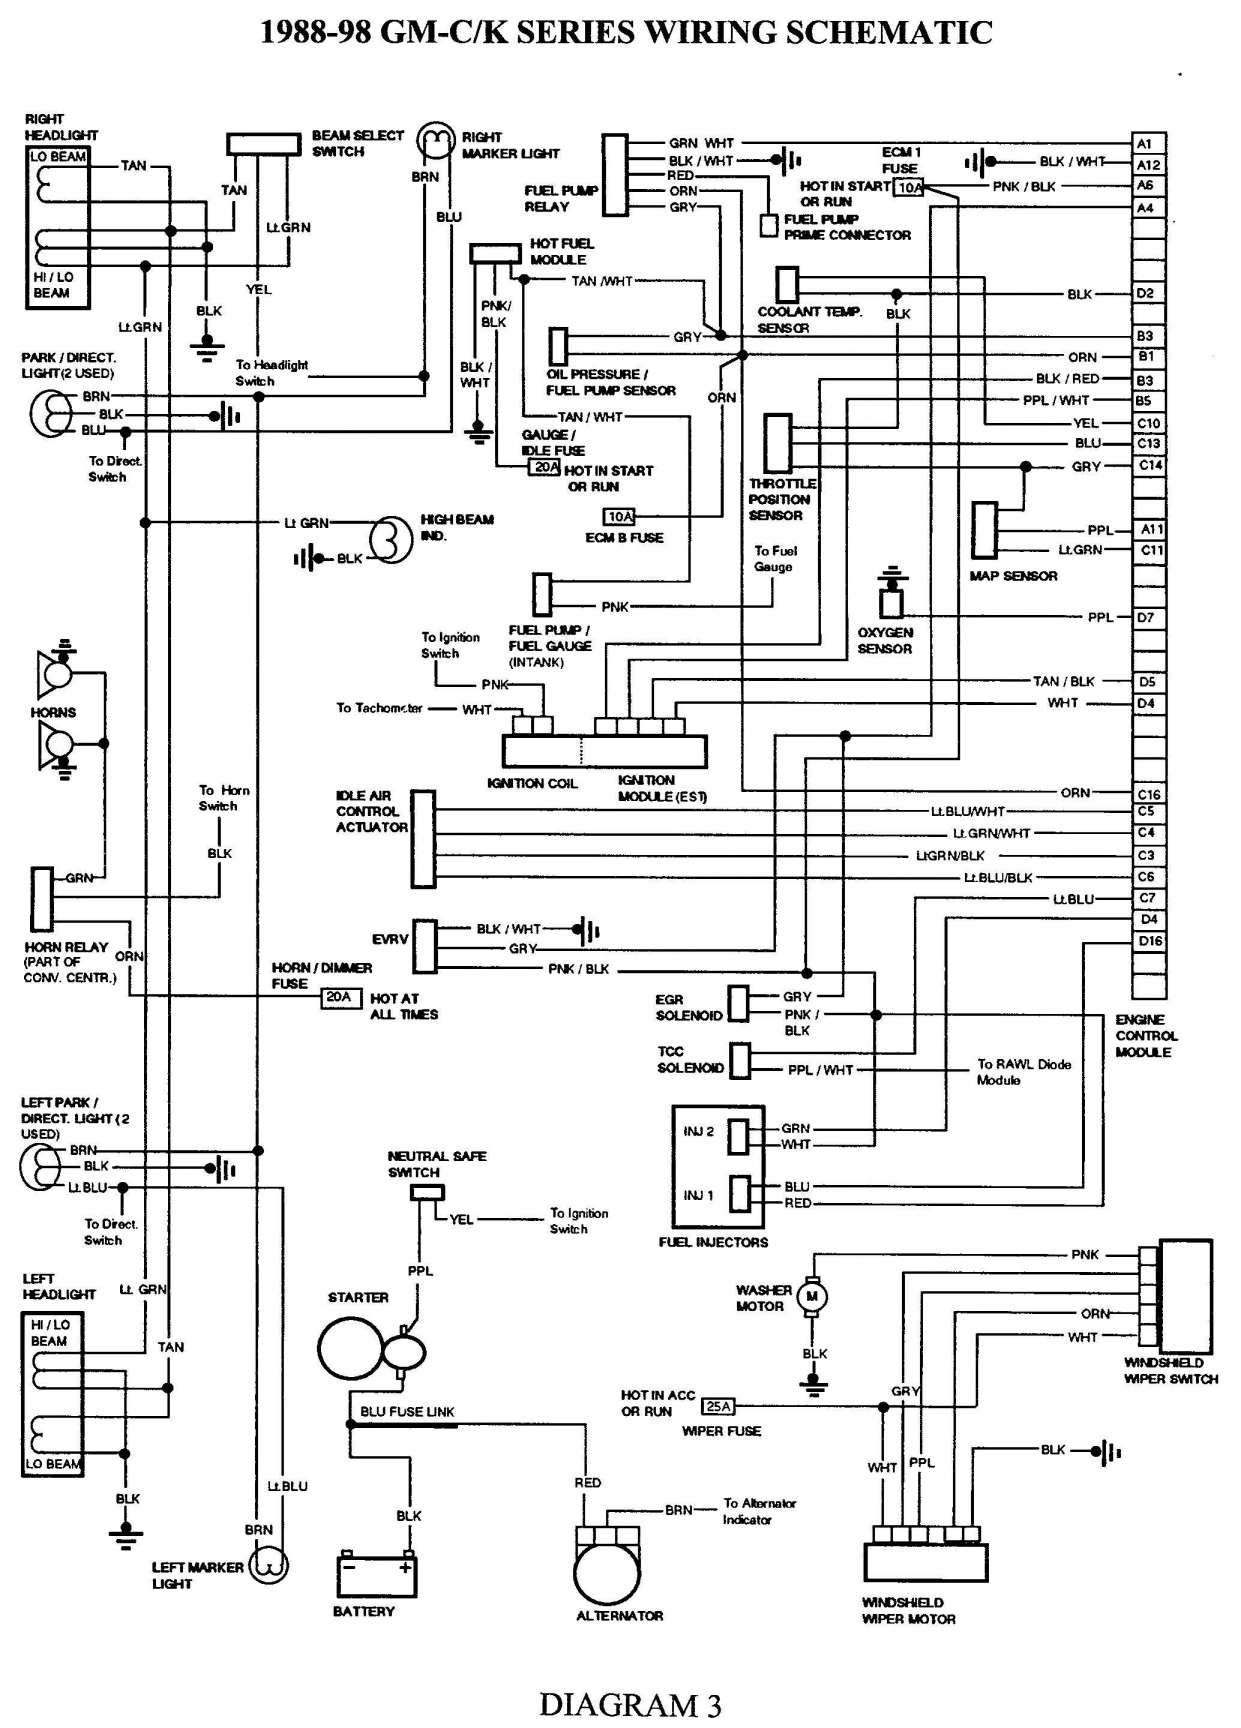 18+ 1998 chevy truck alternator diagram - truck diagram - wiringg.net in  2020 | electrical diagram, chevy 1500, electrical wiring diagram  pinterest